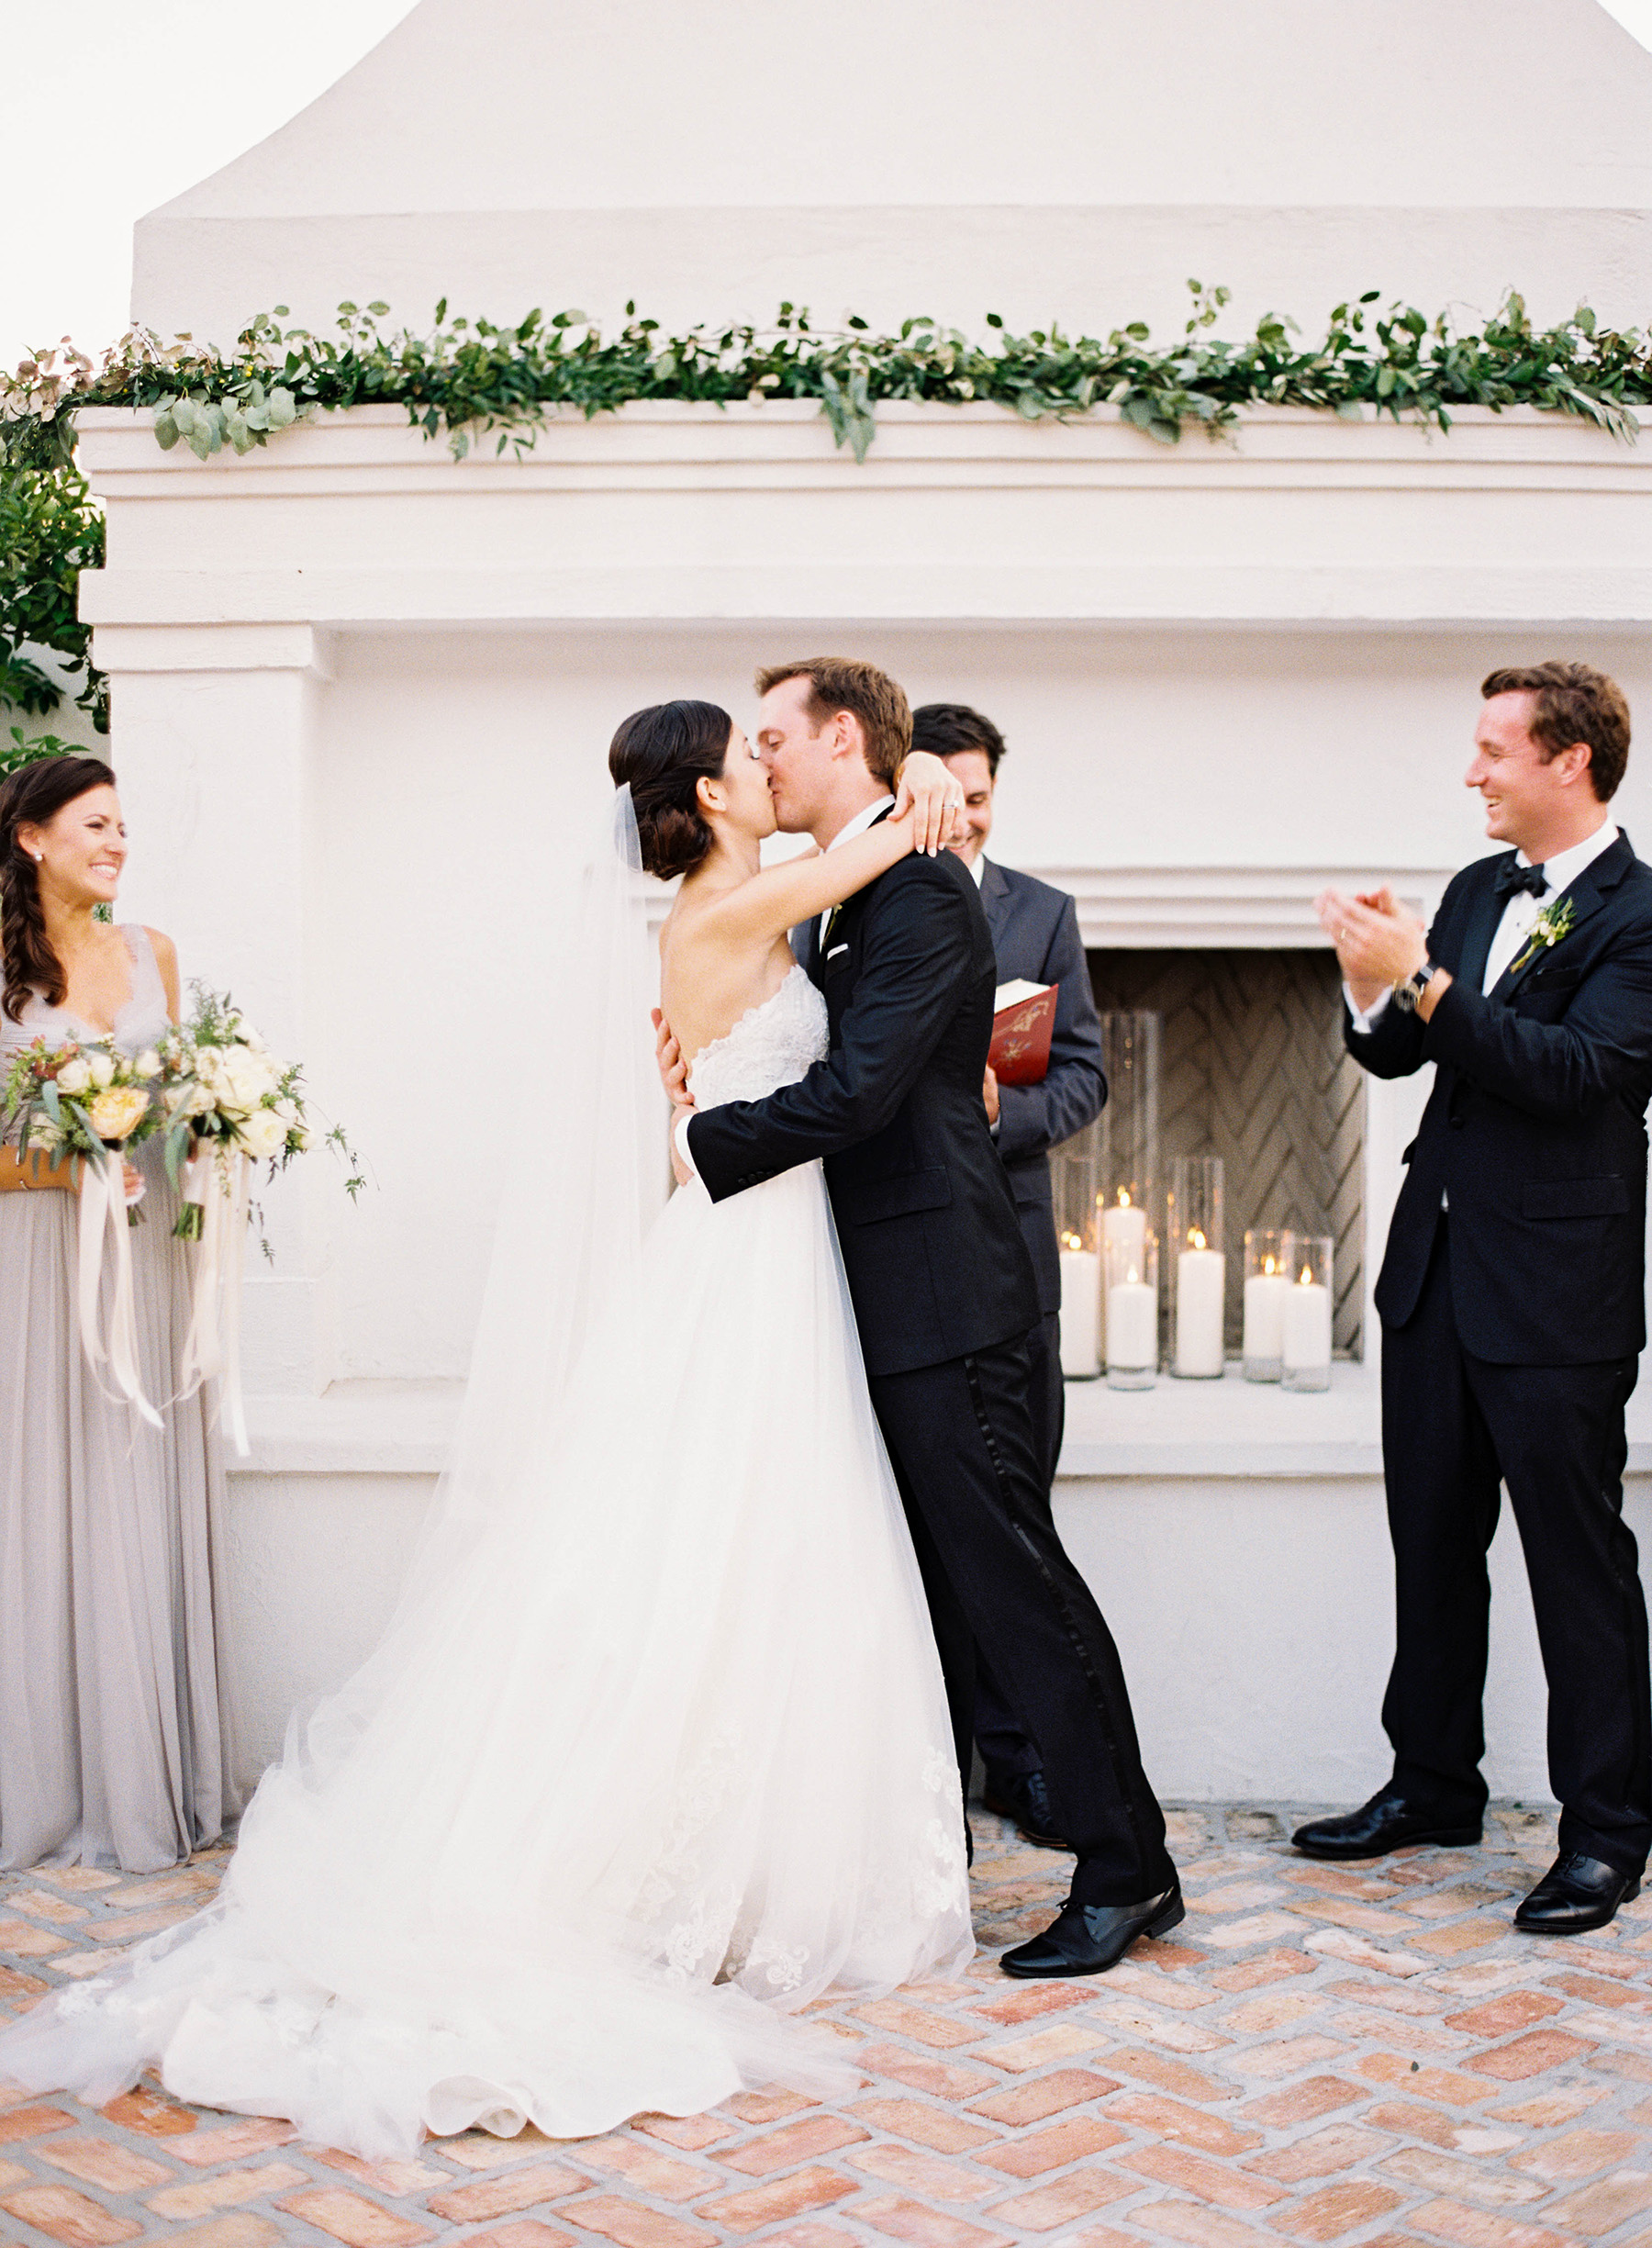 ceremony in front of mantel